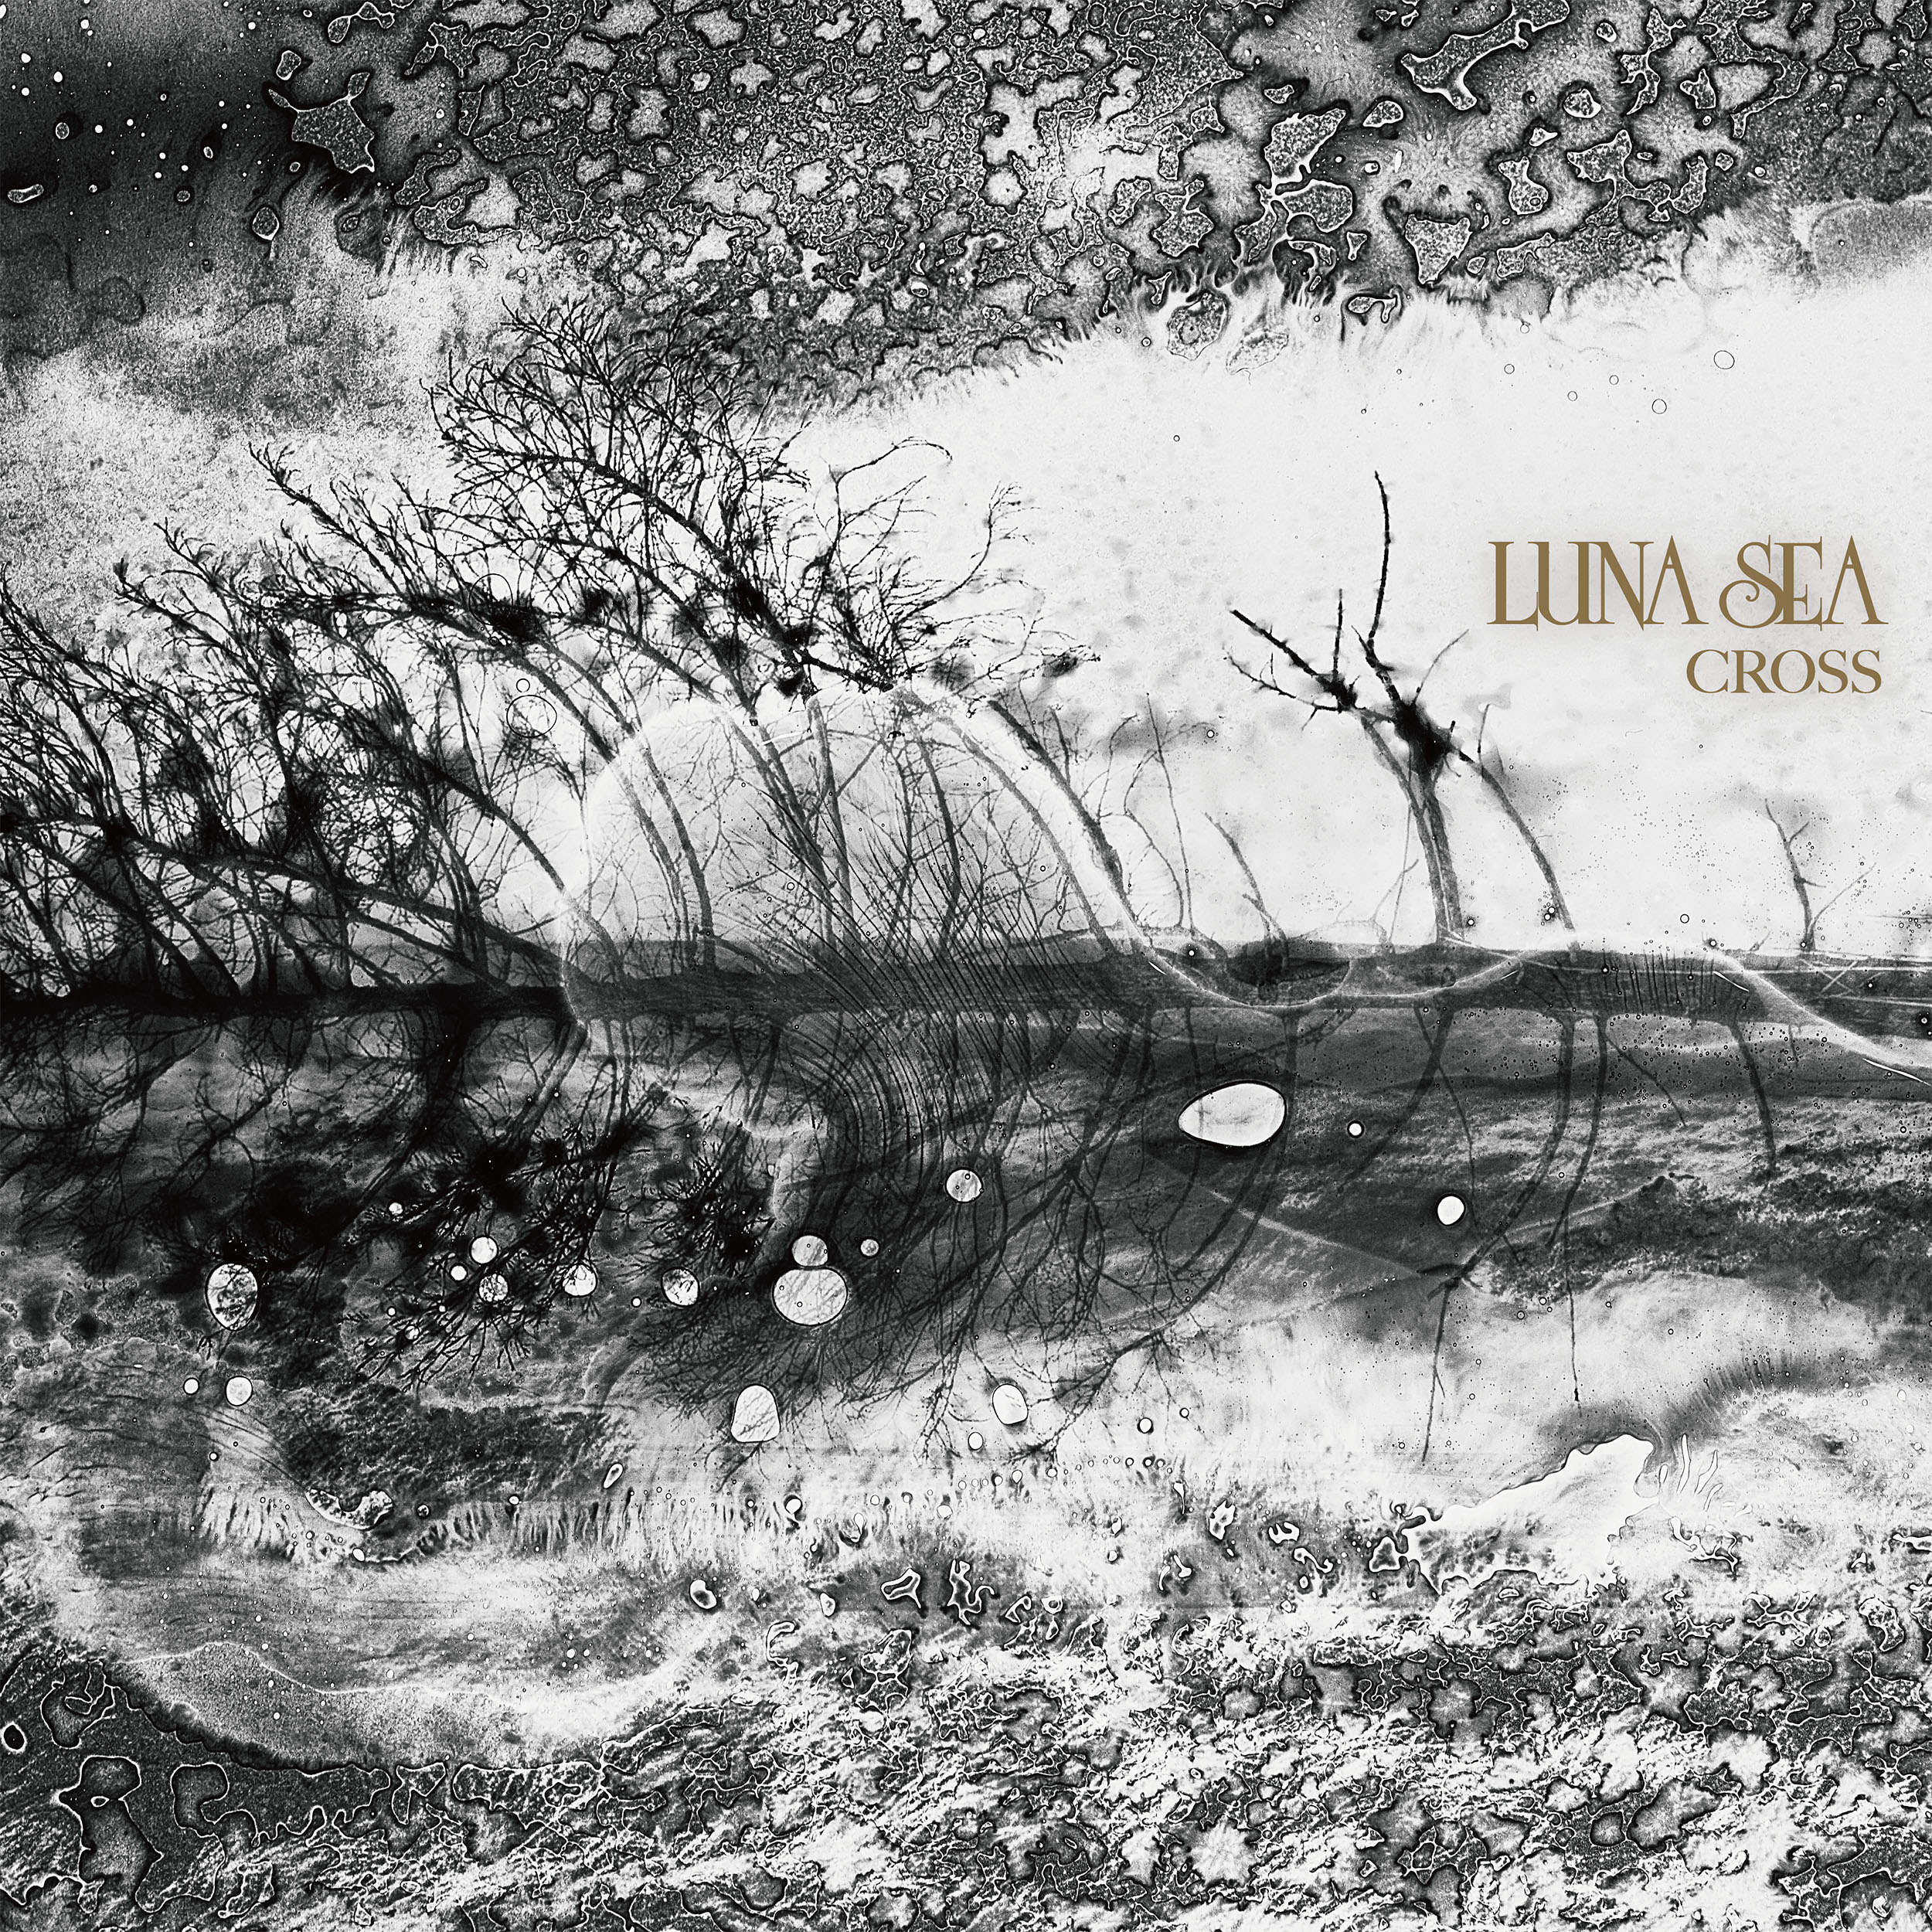 LUNA SEA's 30th Anniversary! Release of 10th Studio Album, CROSS, Jacket Covers! Simultaneous Release of latest Profile Pictures, Album Track List, Bonus CD & Video Information!